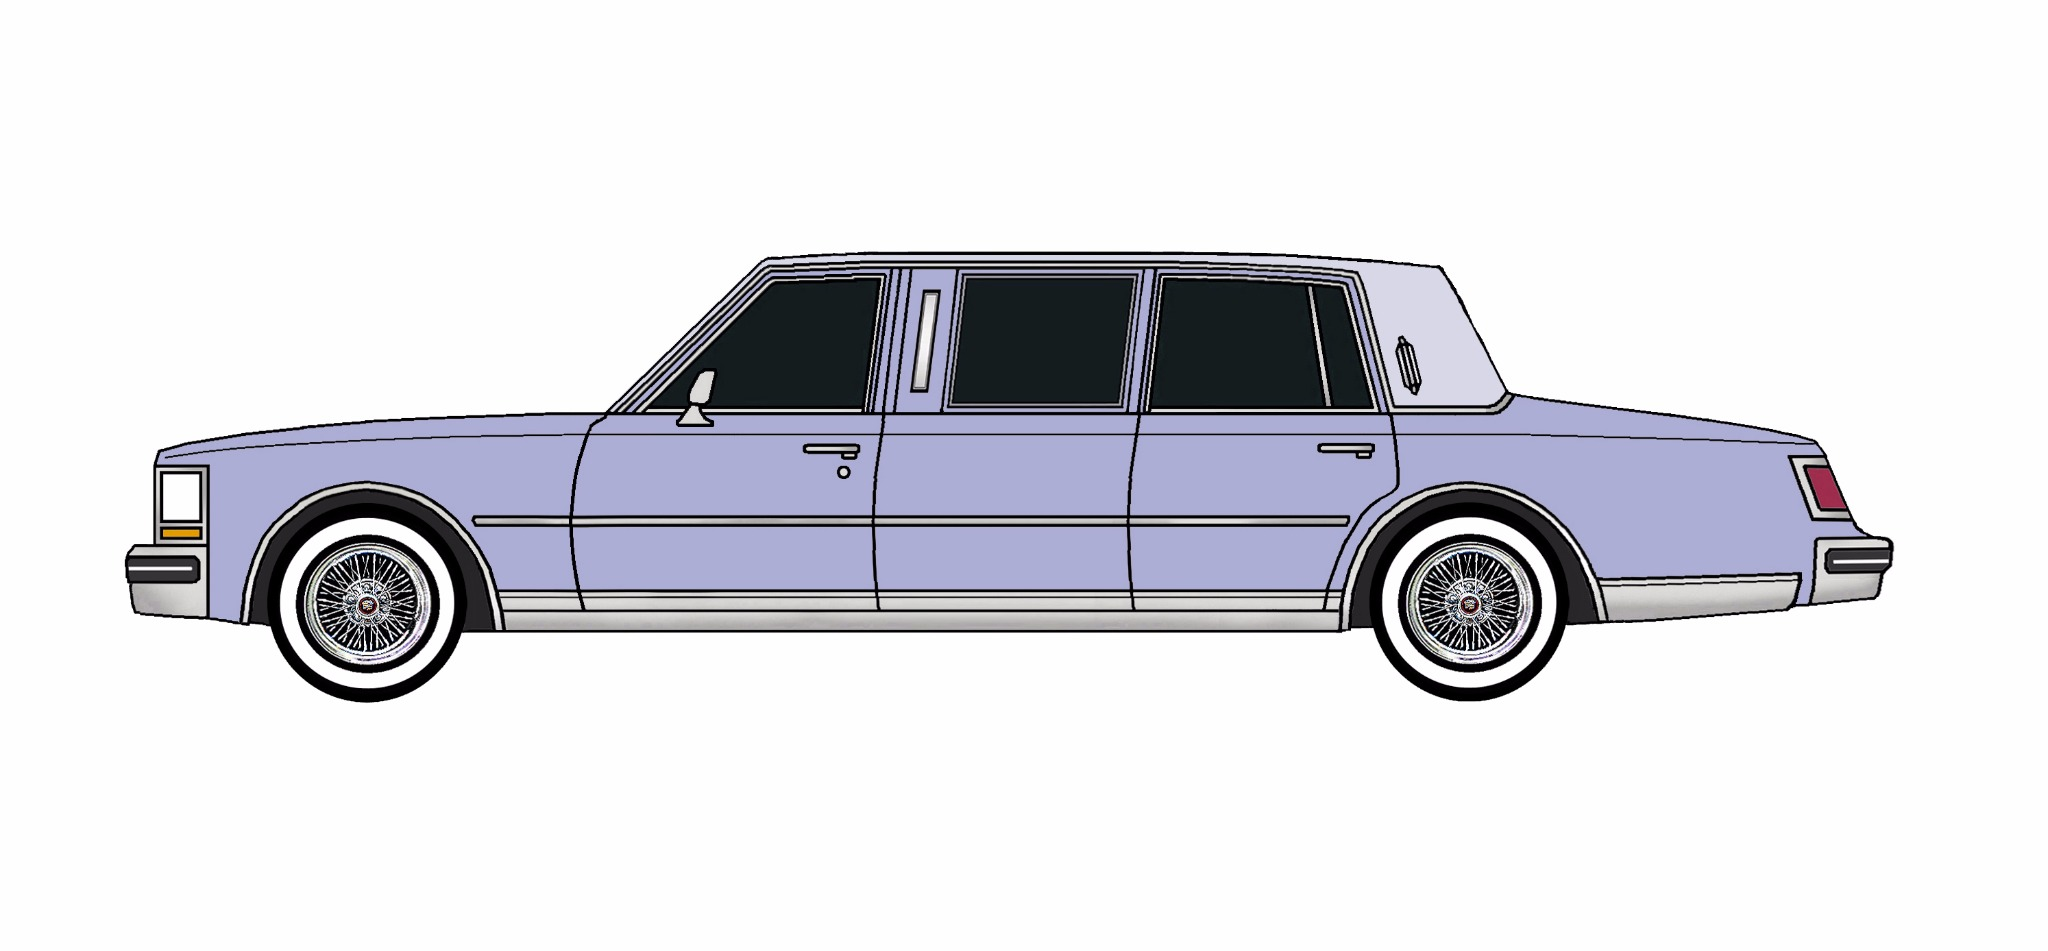 1978 Cadillac Seville Limo LILAC LAVENDER